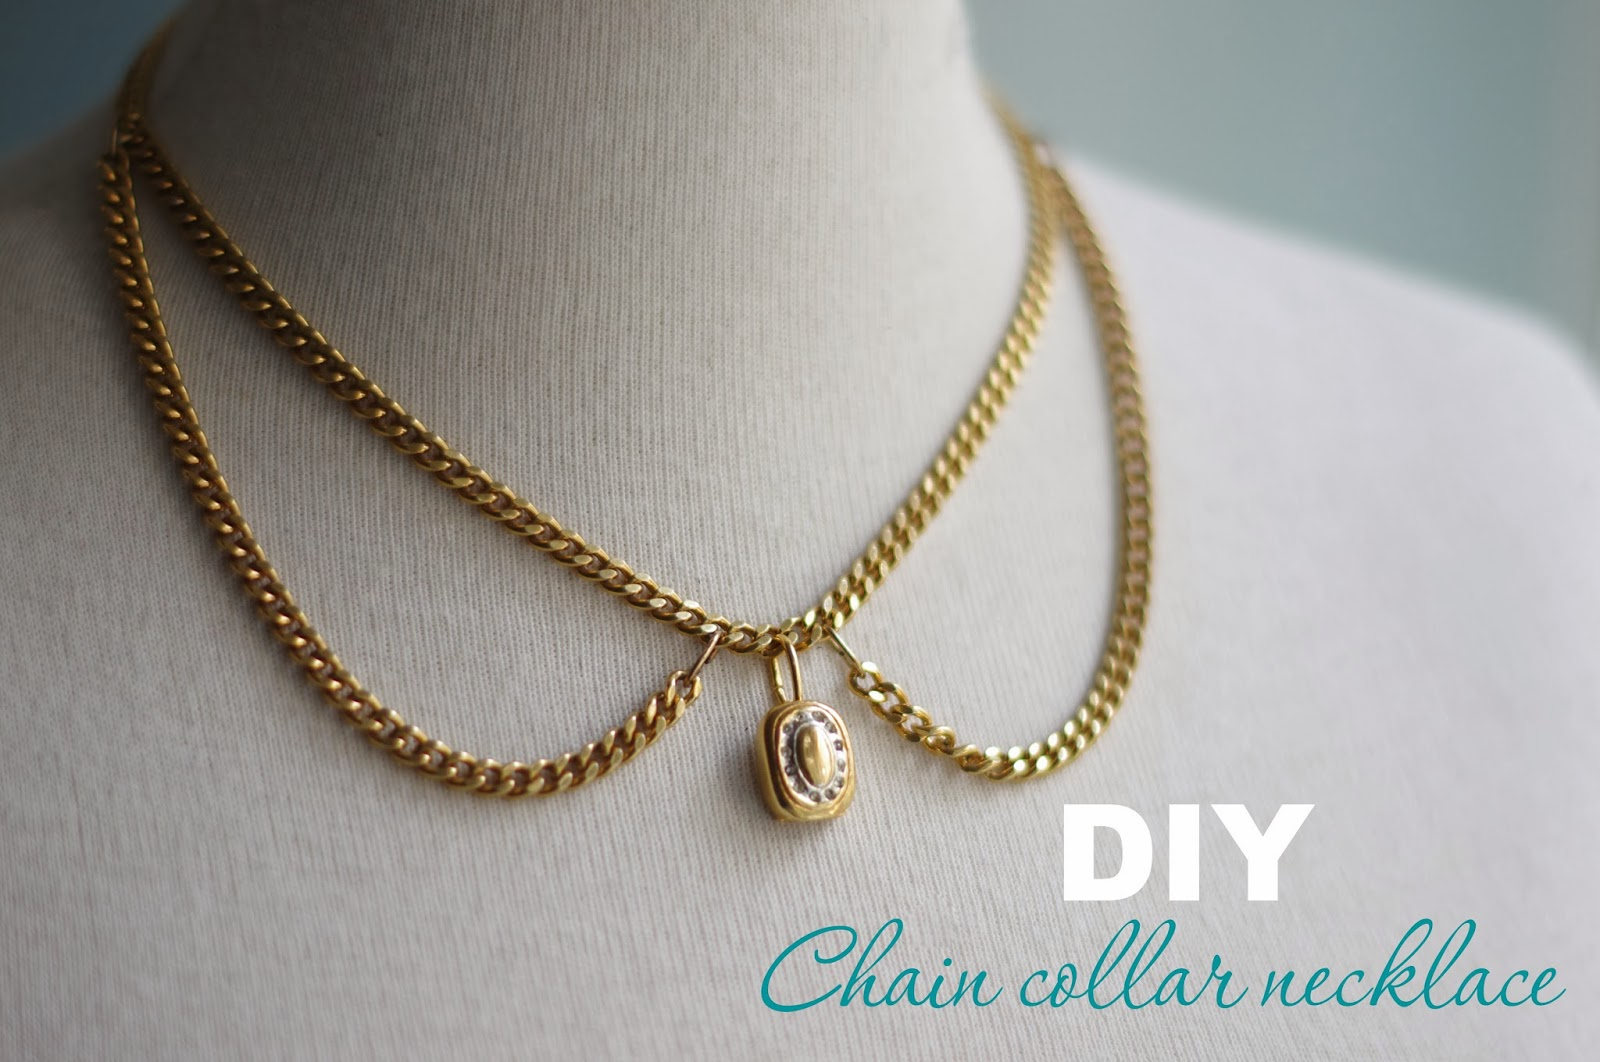 DIY Chain necklace collar